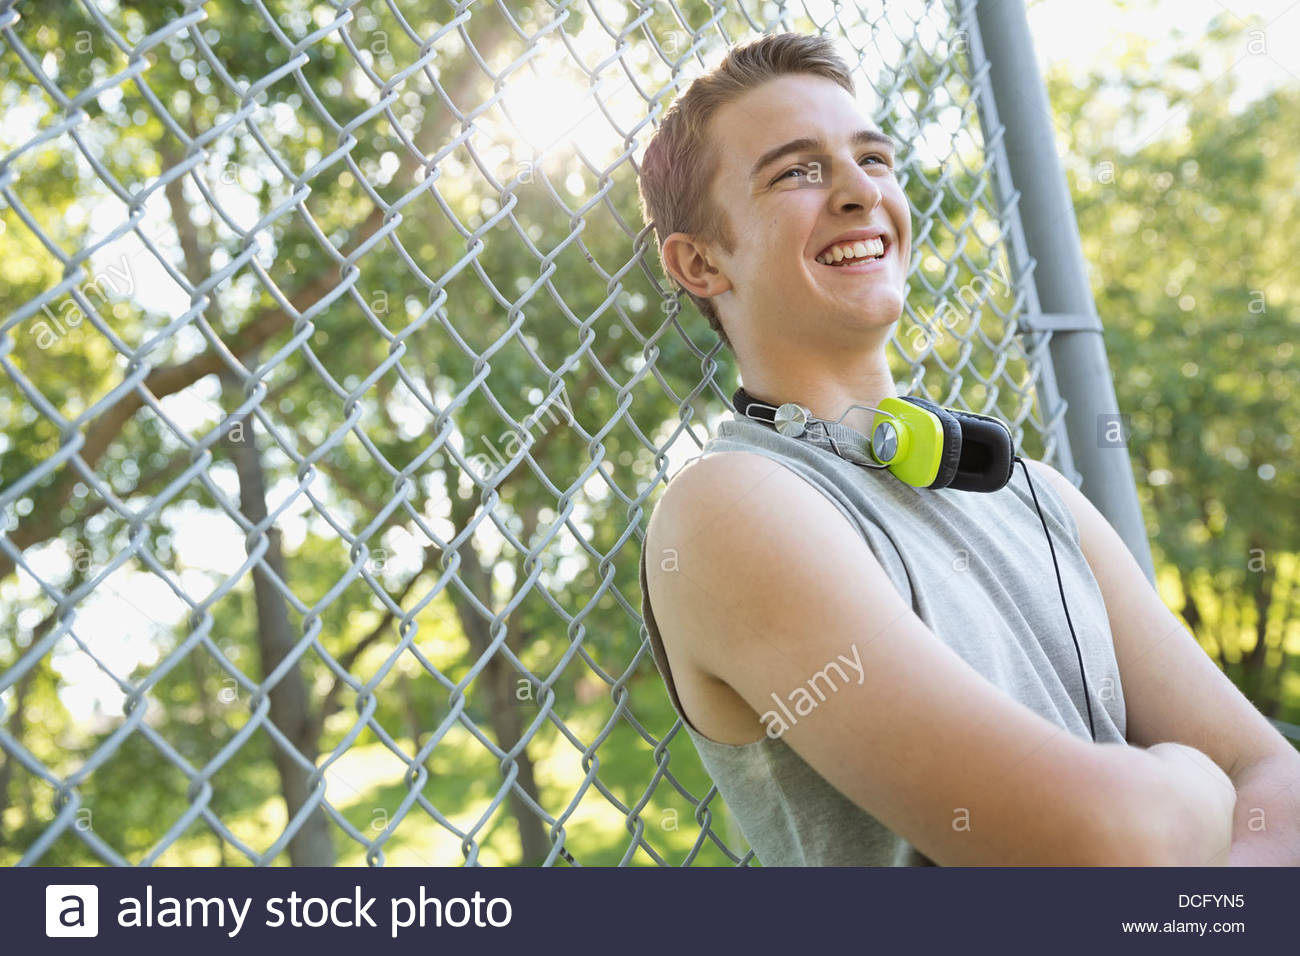 Smiling teen leaning on chain-link fence - Stock Image